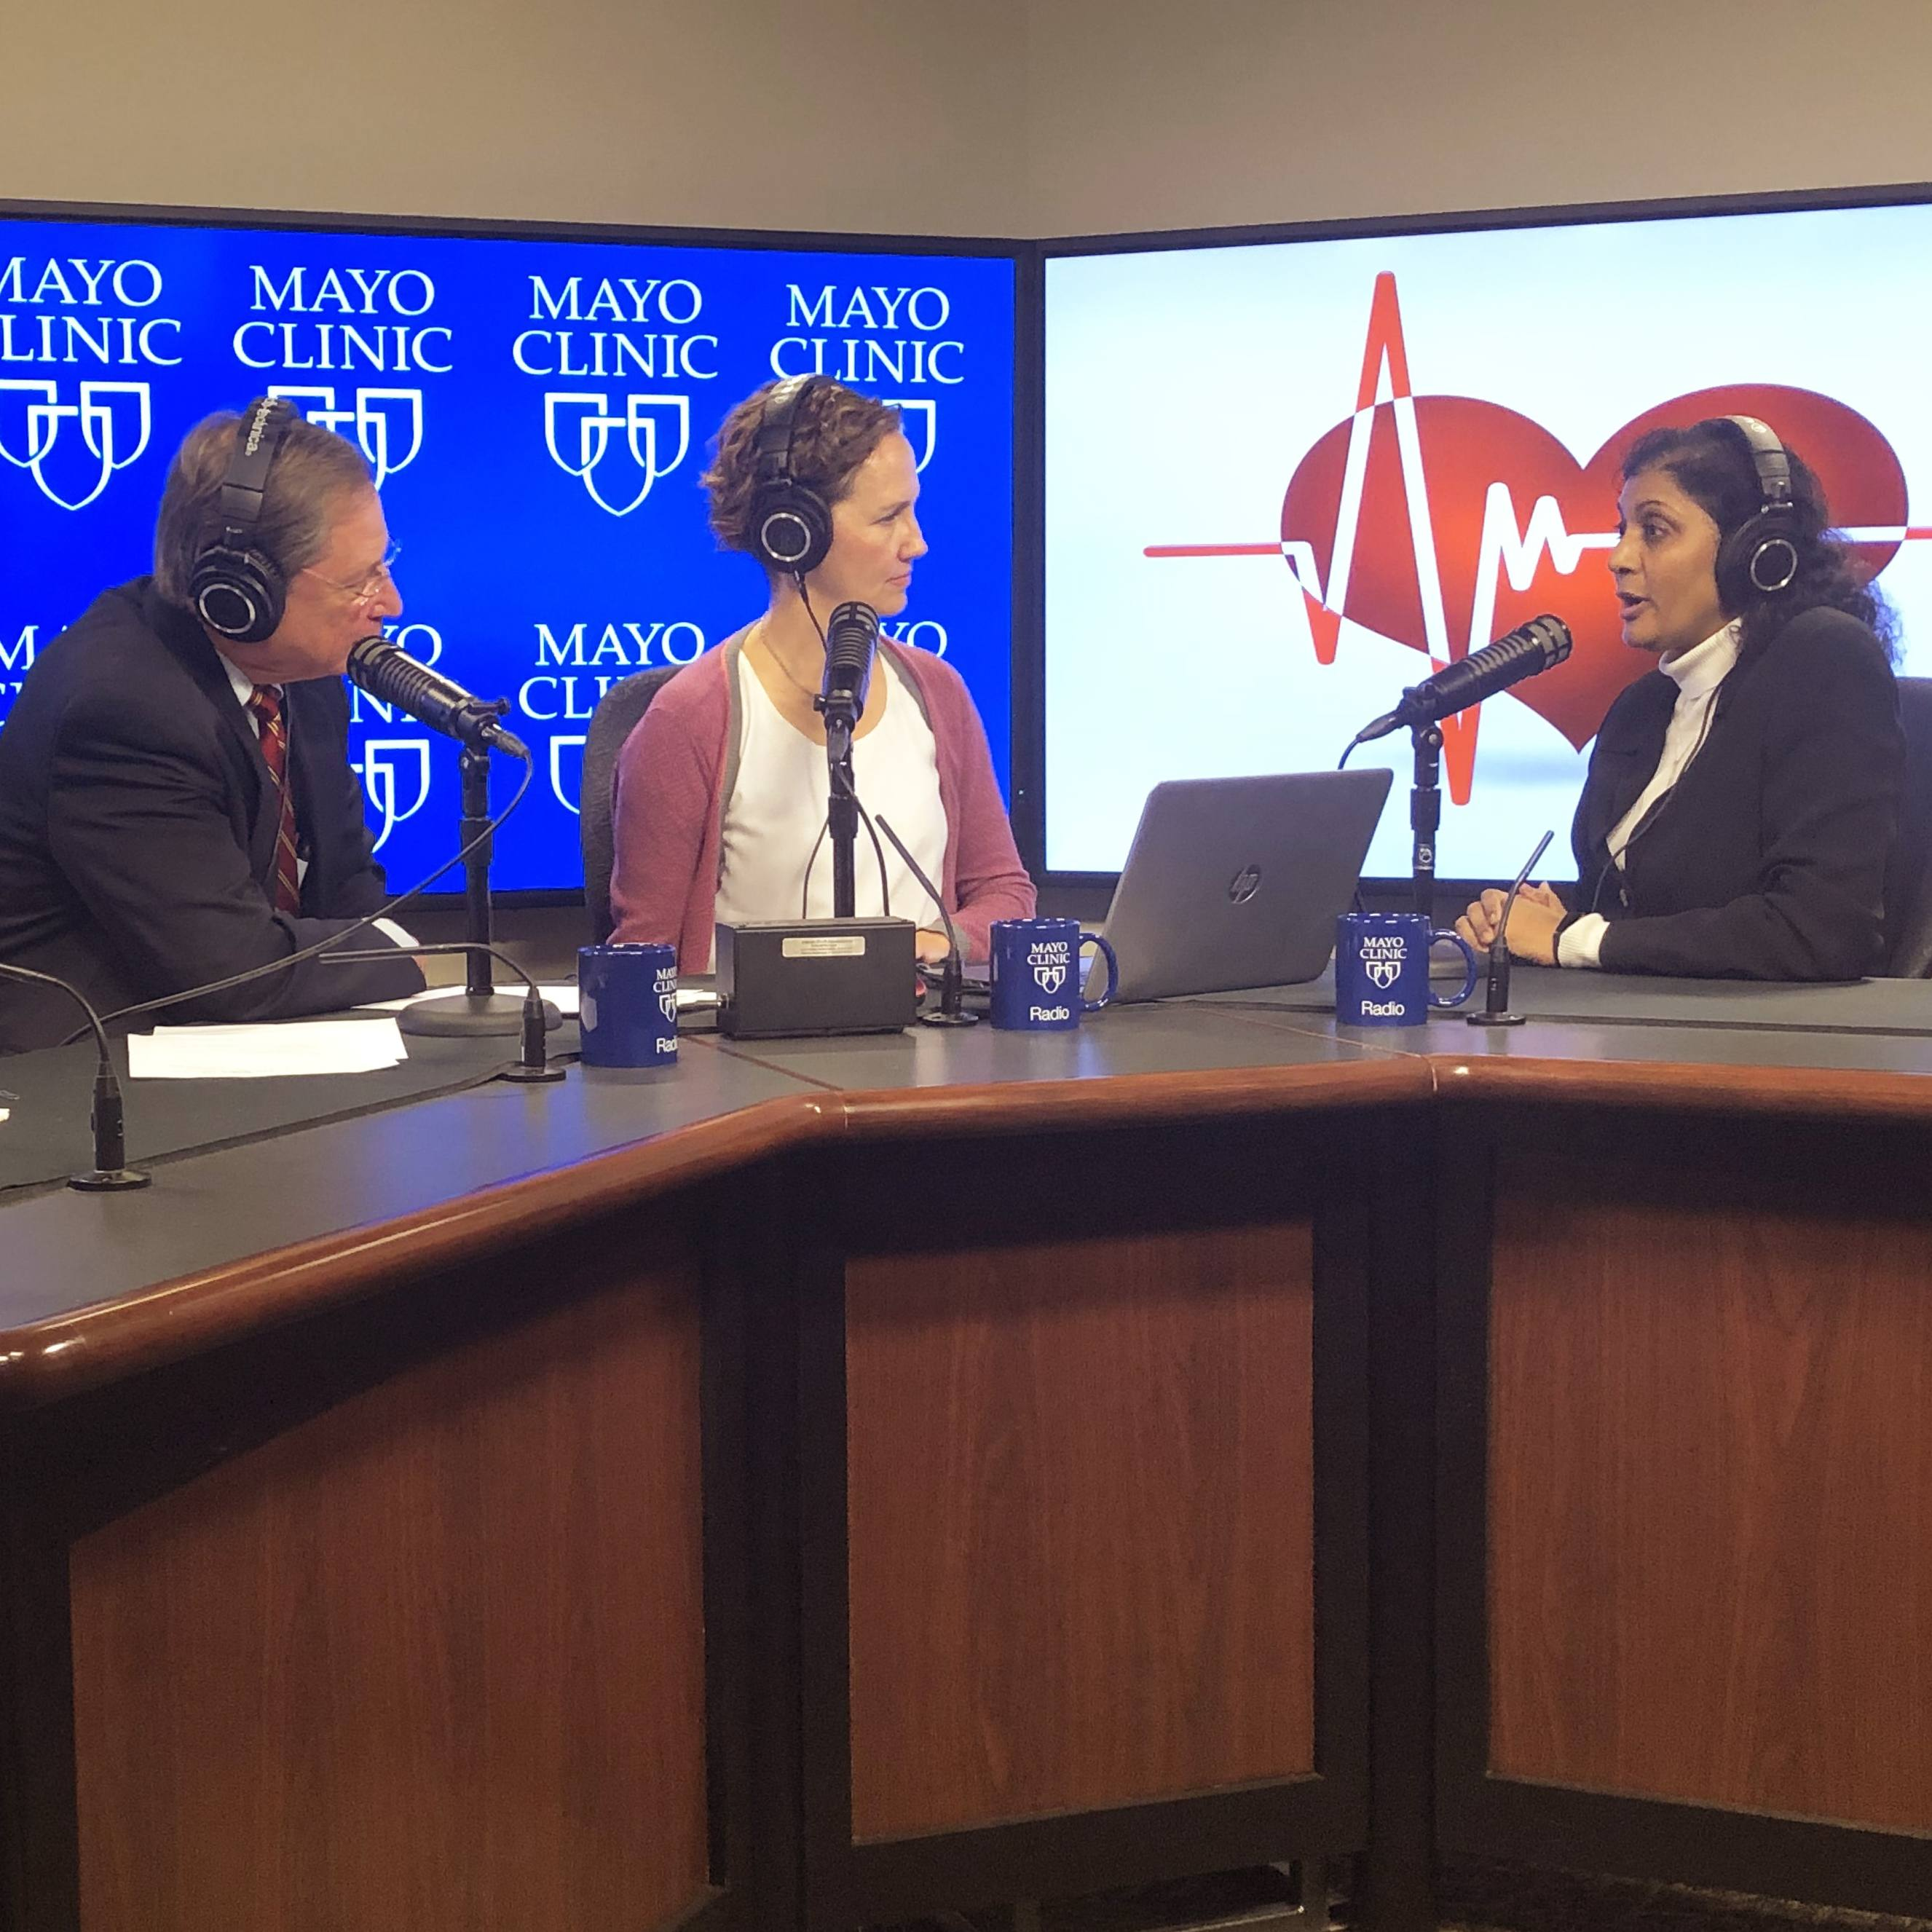 Dr. Rekha Mankad in the radio studio being interviewed by Dr. Shives and Tracy McCray